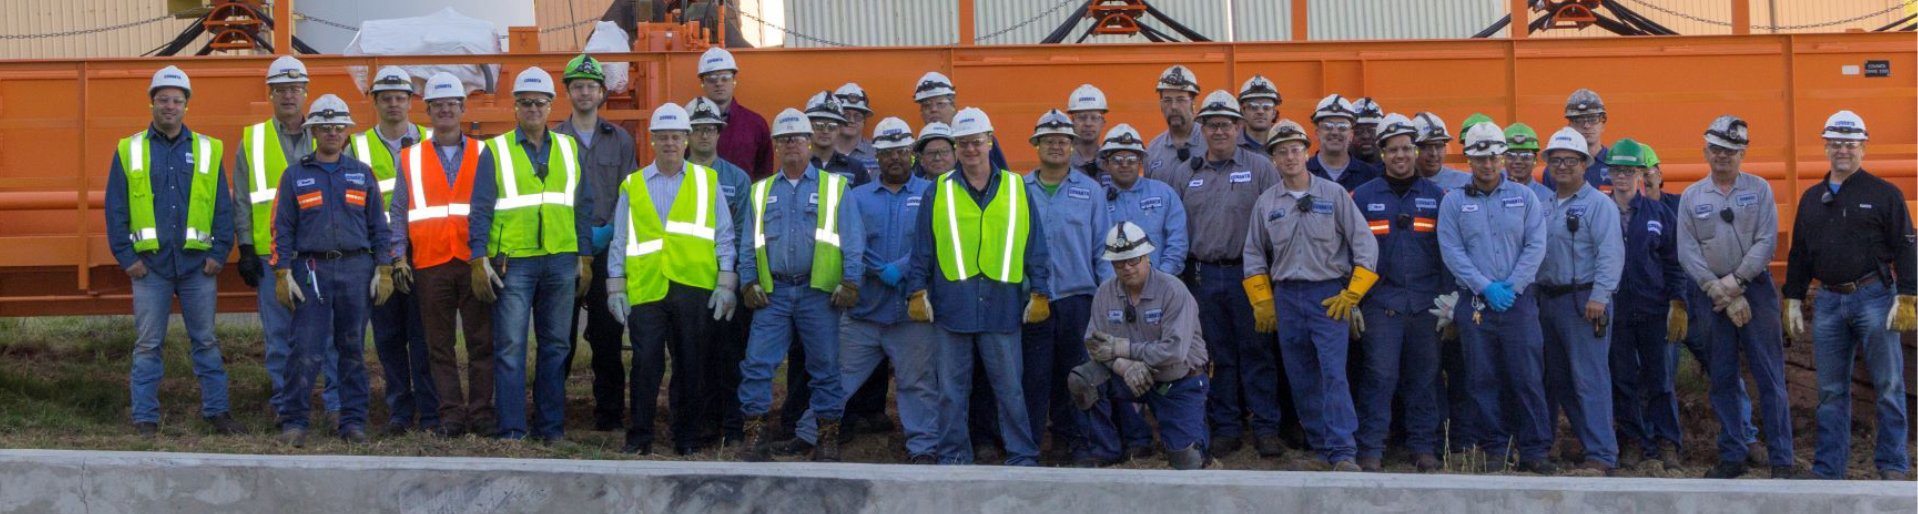 The Fairfax Covanta team lines up outside the facility